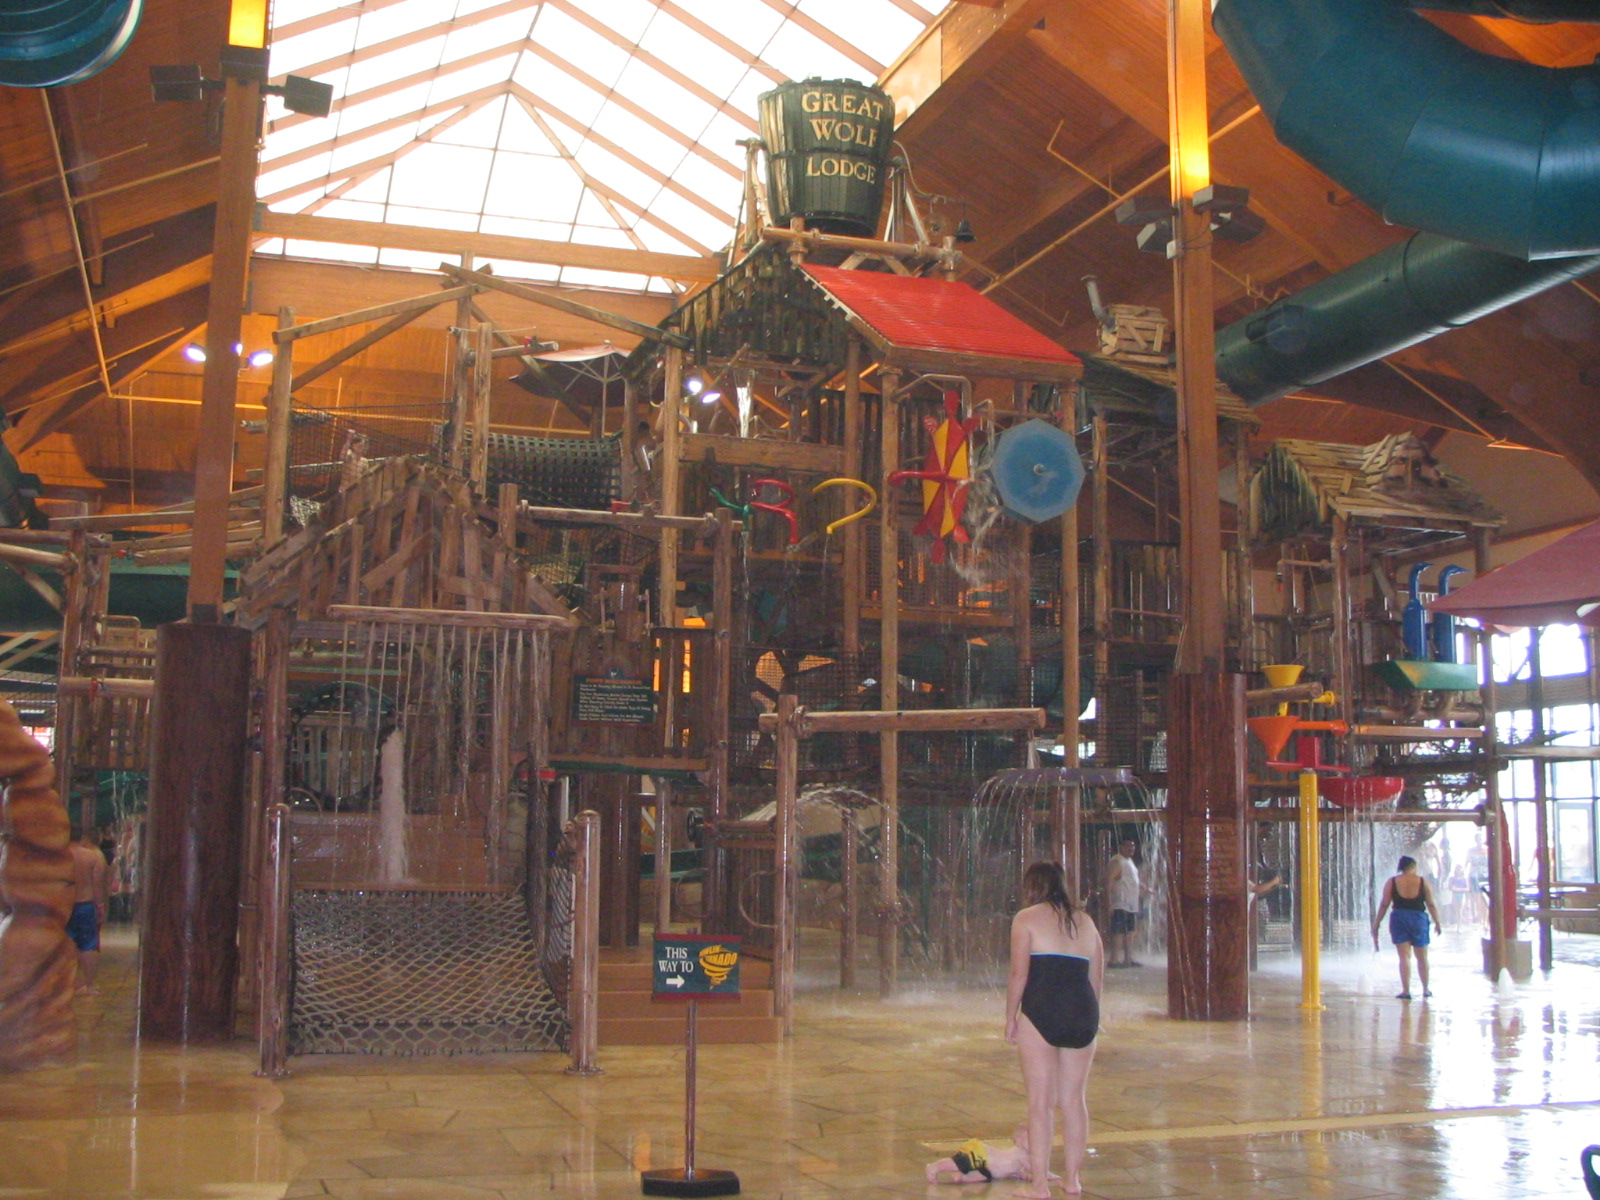 Located near Atlanta, the Great Wolf Lodge Georgia includes a huge, 93,square-foot indoor water park. Attractions include the River Canyon Run family raft ride, the Big Foot Pass lily pad walk, and Raccoon Lagoon, an outdoor activity pool.